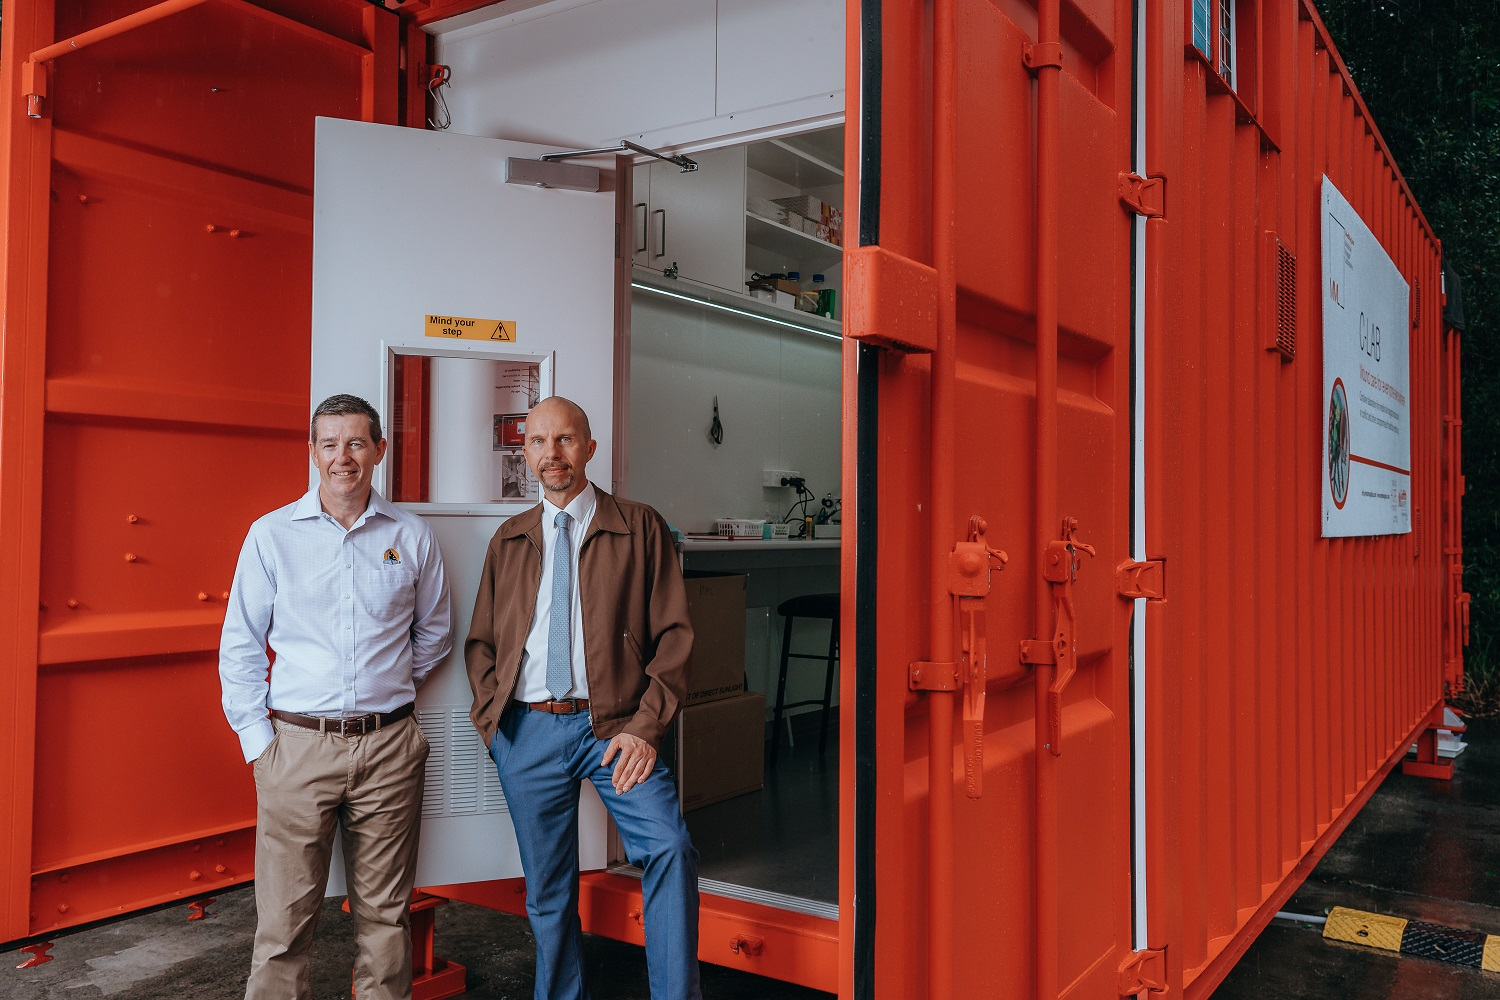 A shipping container with the potential to save lives